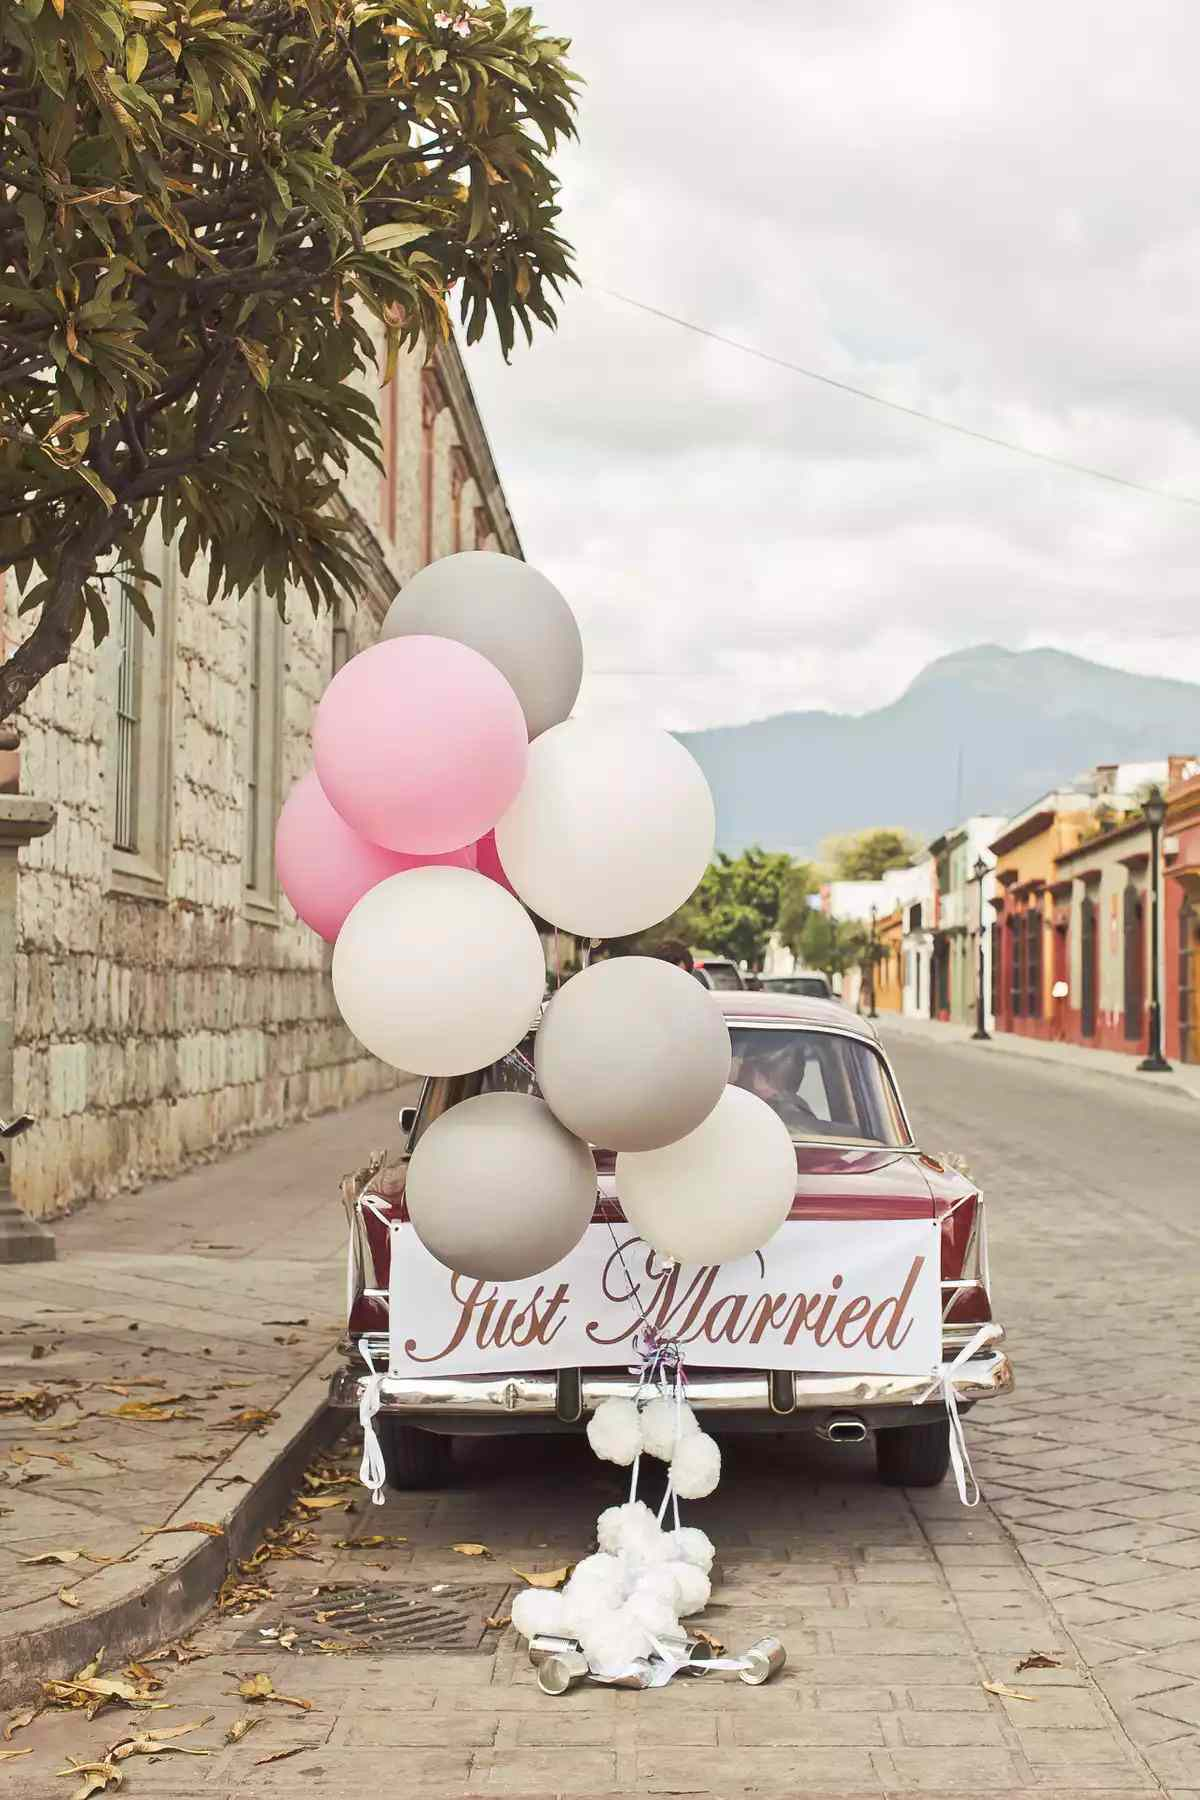 Pink, white and gray balloons attached to a getaway car